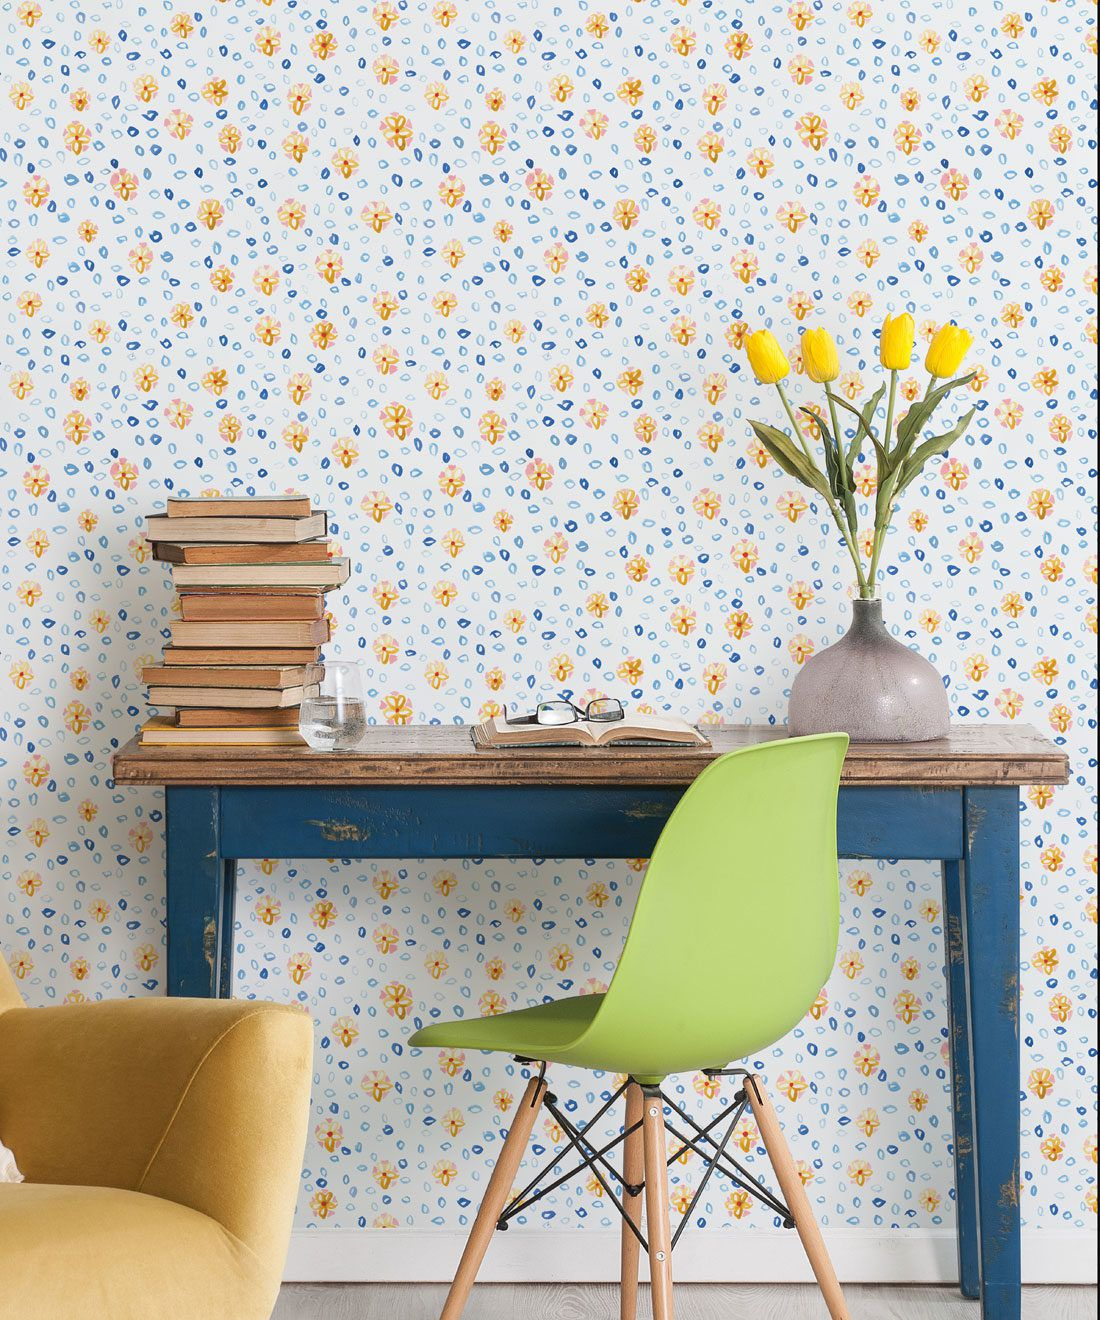 Al Hadiqa Wallpaper • Dainty Floral Design • Desk with books stacked on the left and a lime green chair in front with yellow tulips in a vase on the right side of the desk. • Milton & King USA